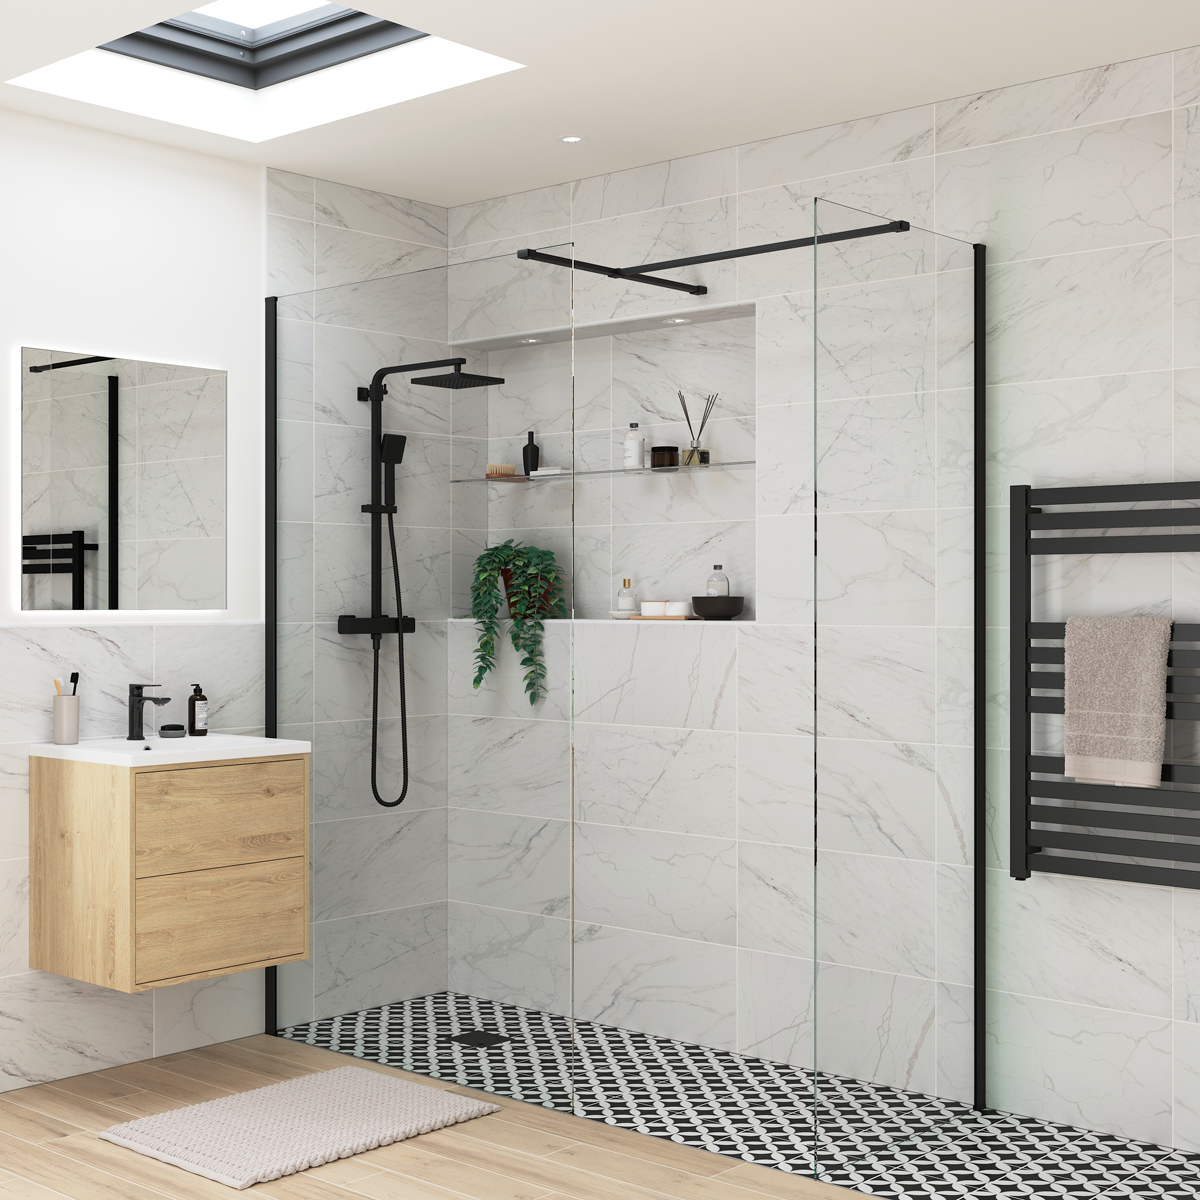 NEW ARRIVAL... RefleXion 8 Black Wet Room Shower Enclosure with Optional Side Panel ⠀